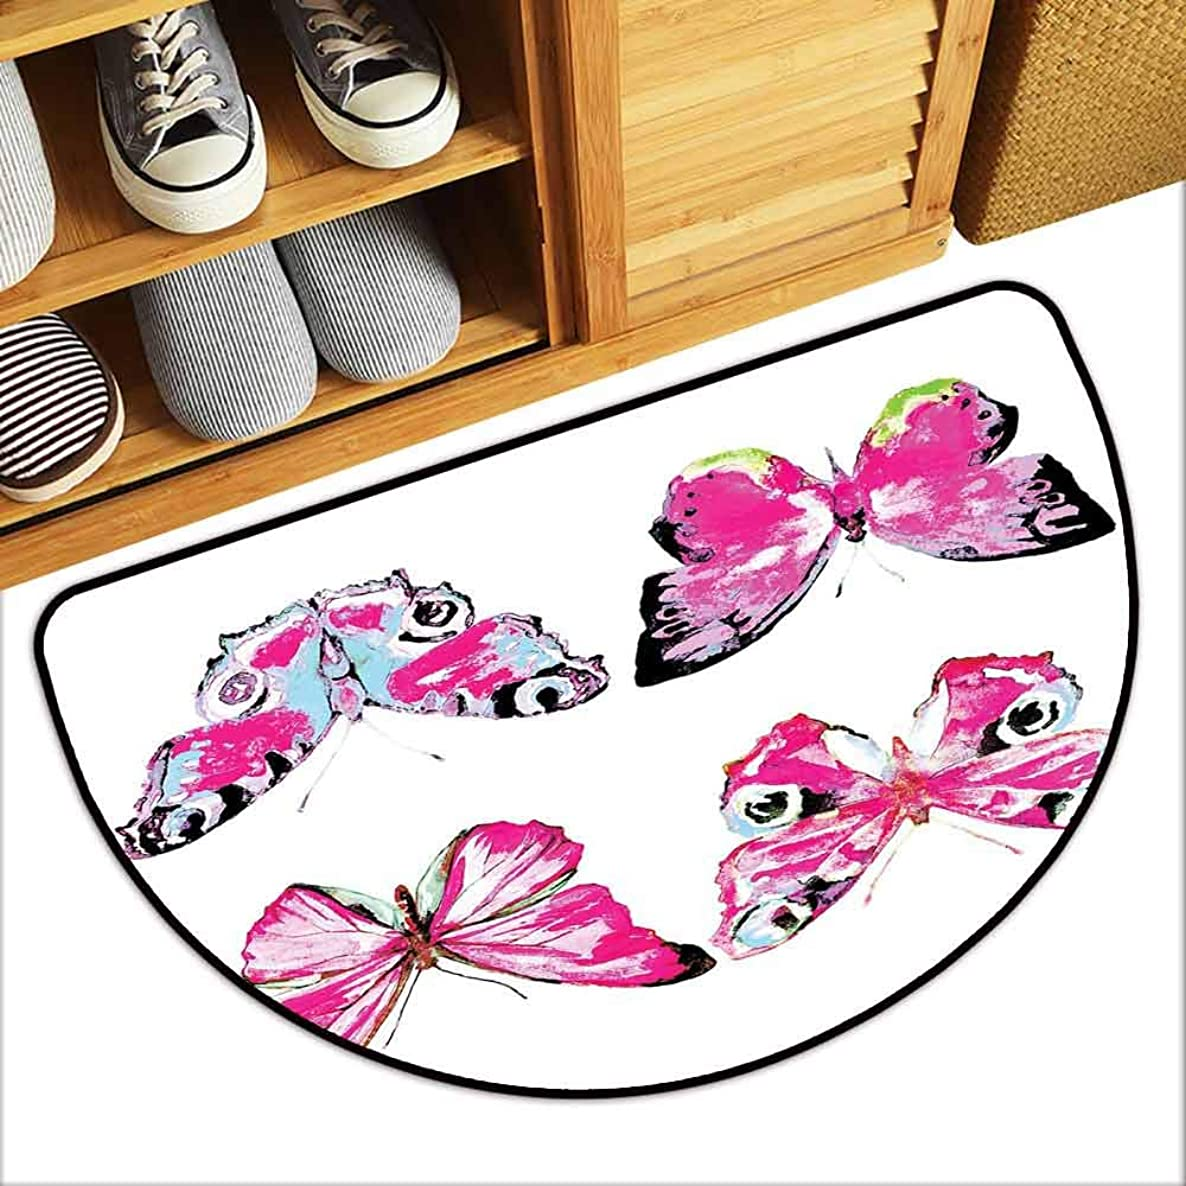 DILITECK Door mat Watercolor Set of Artistic Butterflies Spring Nature Wildlife Insects Vintage Machine wash/Non-Slip W36 xL24 Pink Baby Blue Black